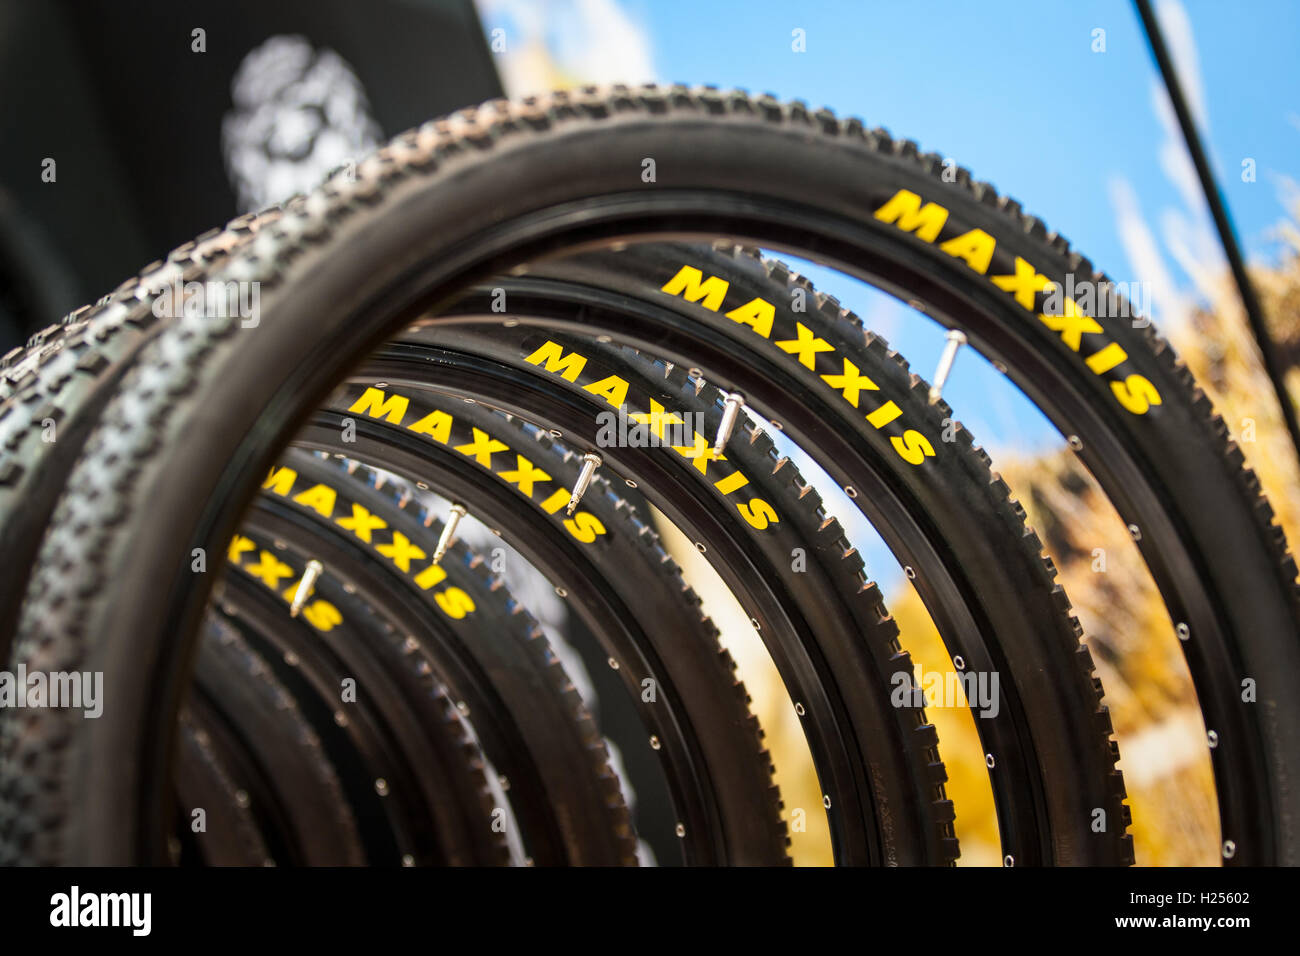 Birmingham, UK 24th Sep, 2016 Birmingham, UK 24th Sep, 2016 Maxxis bike tyres on display on their stand Credit: - Stock Image